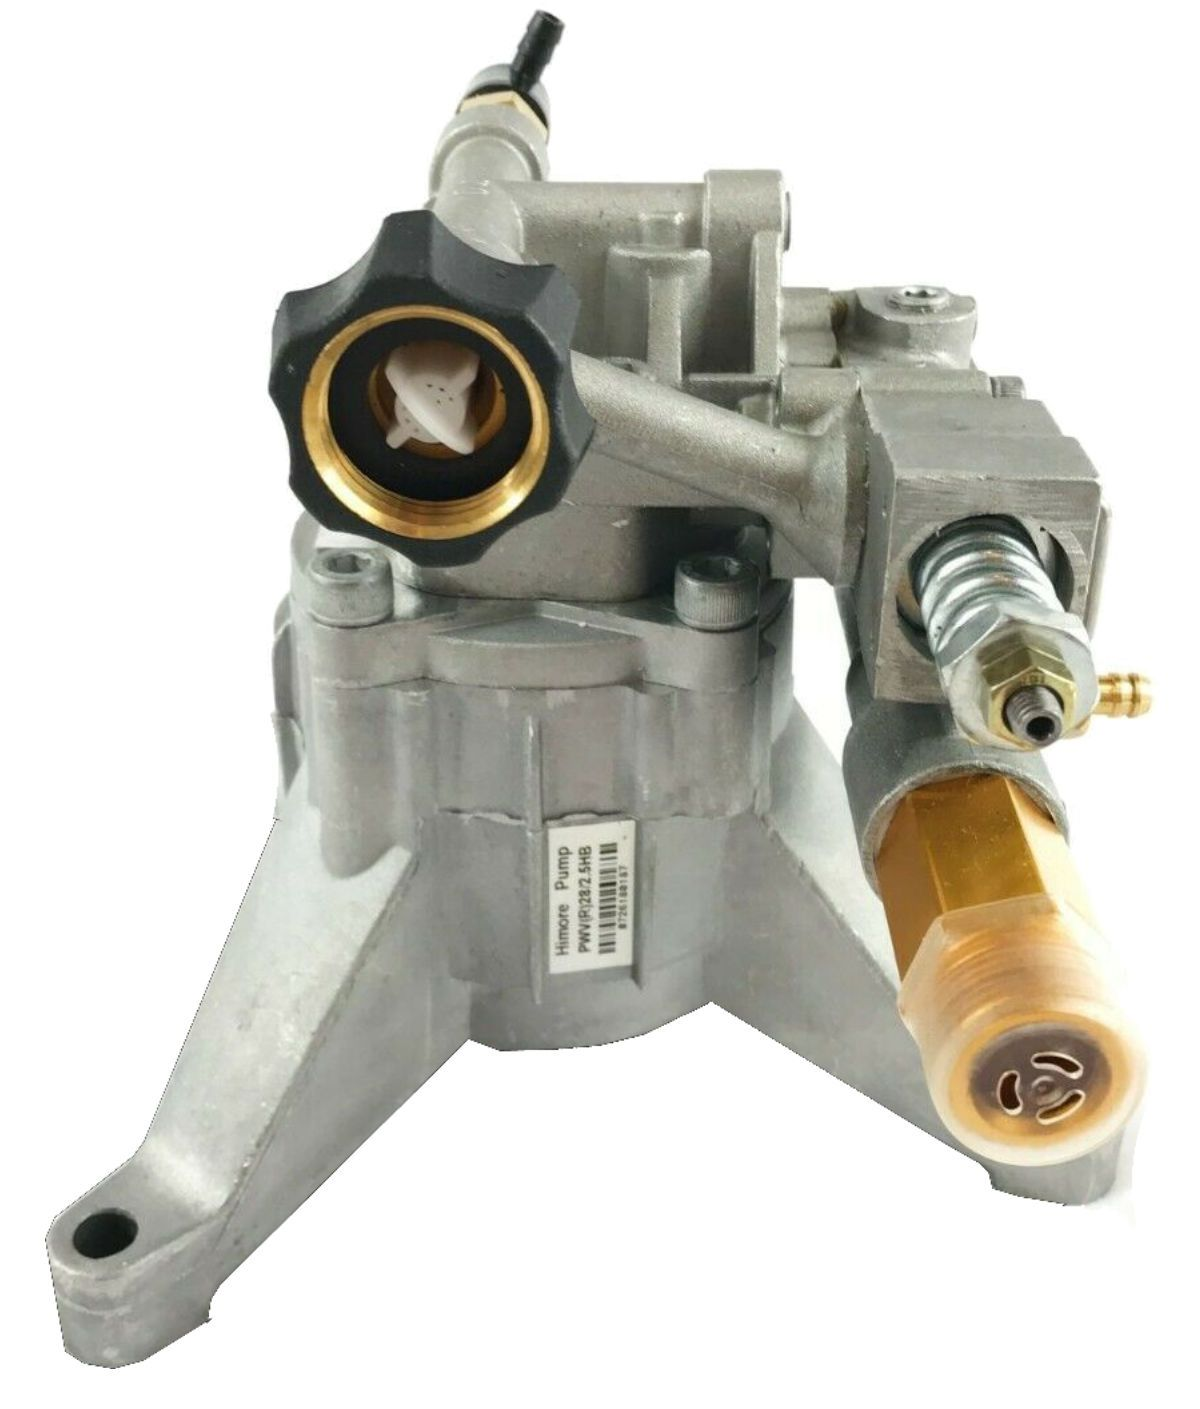 2700 PSI PRESSURE WASHER WATER PUMP Fits Briggs & Stratton 020245-1 020245-2 - AE-Power